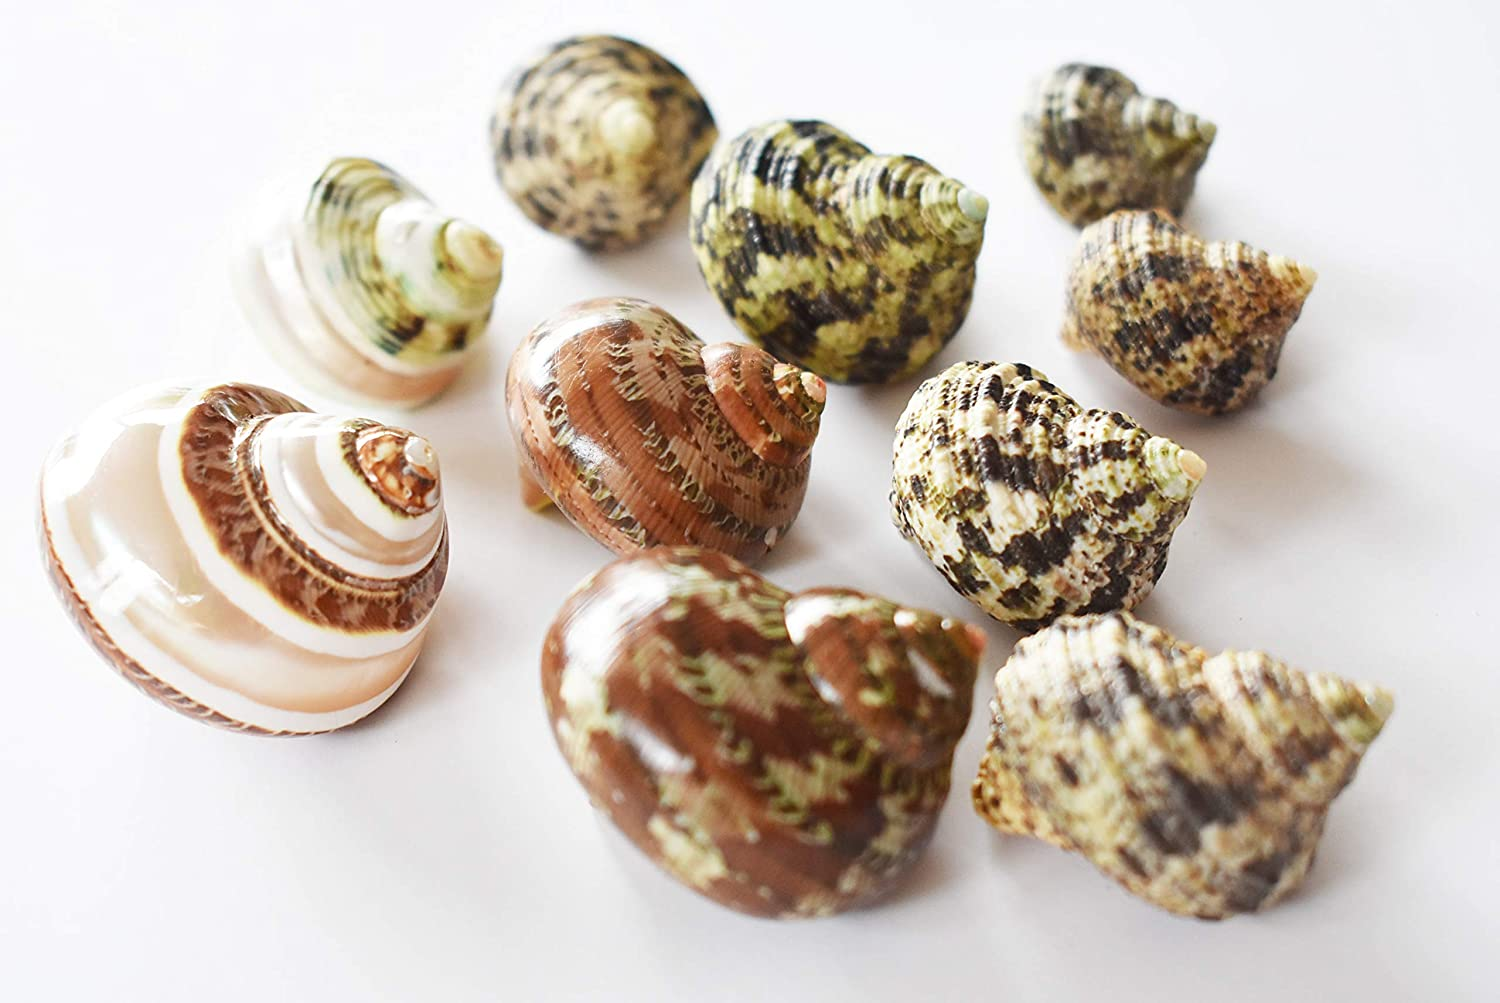 FSG - Select 10 Hermit Crab Shells Deluxe Turbo Changing Seashells Medium 1-2 Size (Opening Size 5/8 - 1) Beautiful Florida Shells and Gifts